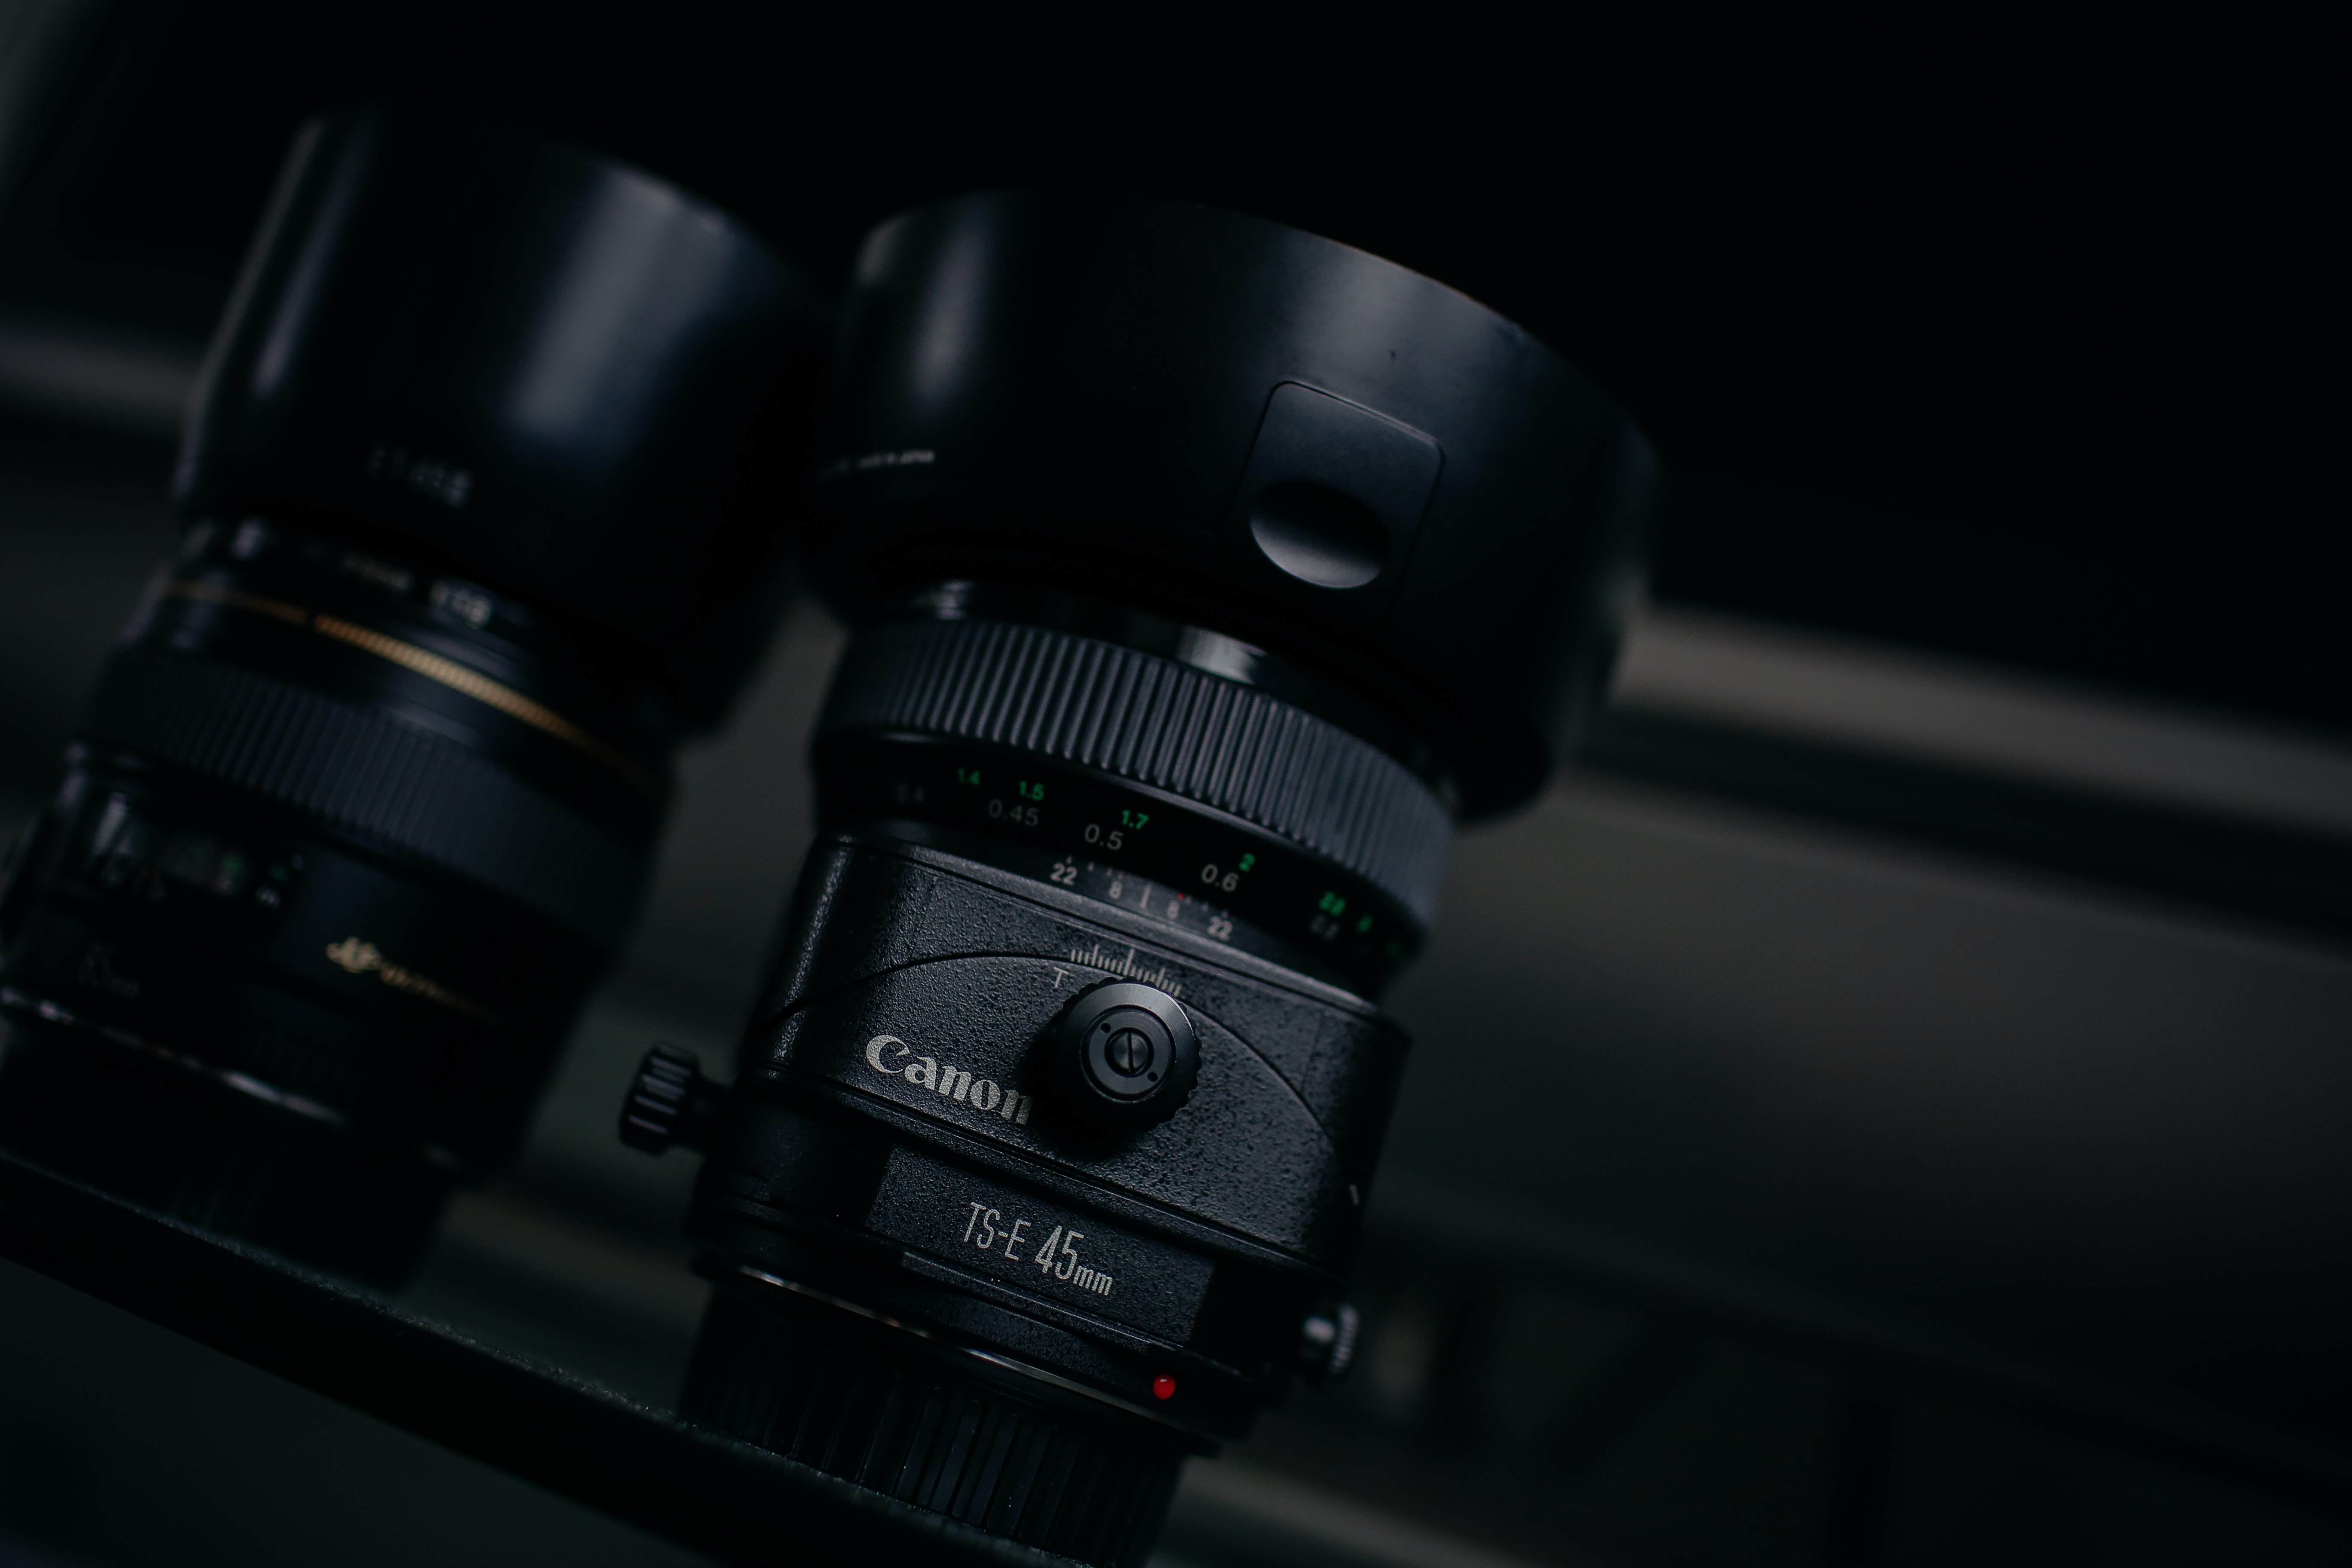 Canon 45mm lens beside another lens on a shelf